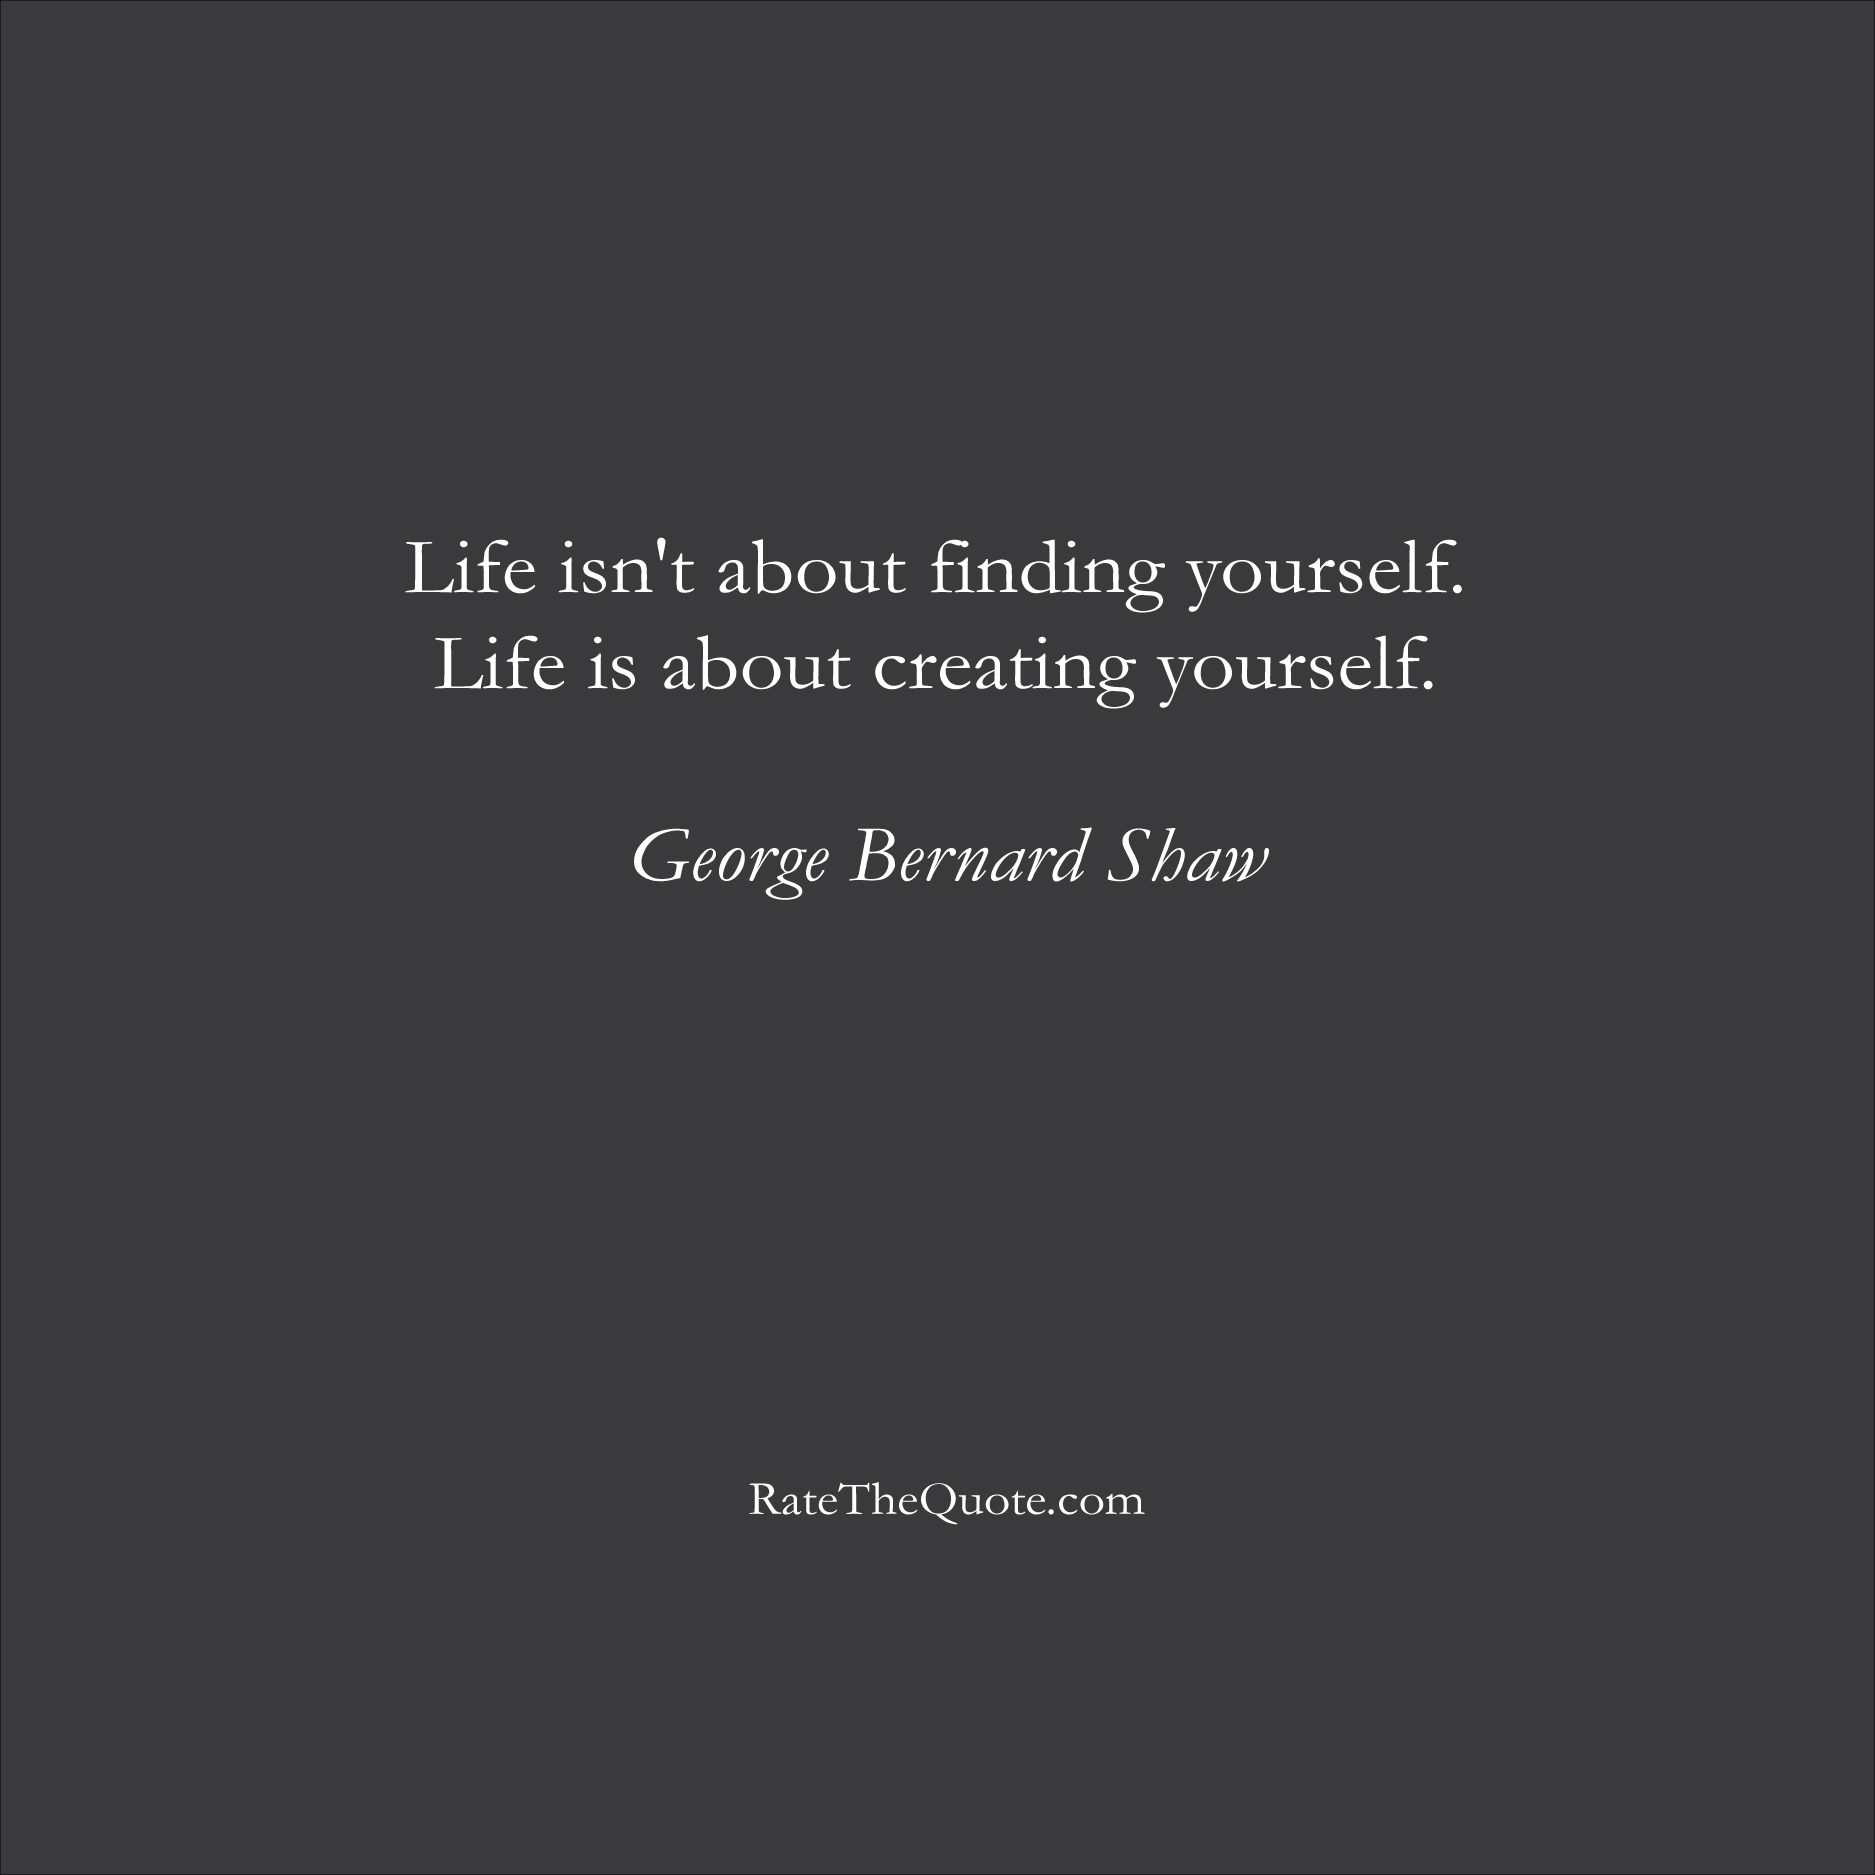 Life Quotes Life isn't about finding yourself. Life is about creating yourself. George Bernard Shaw